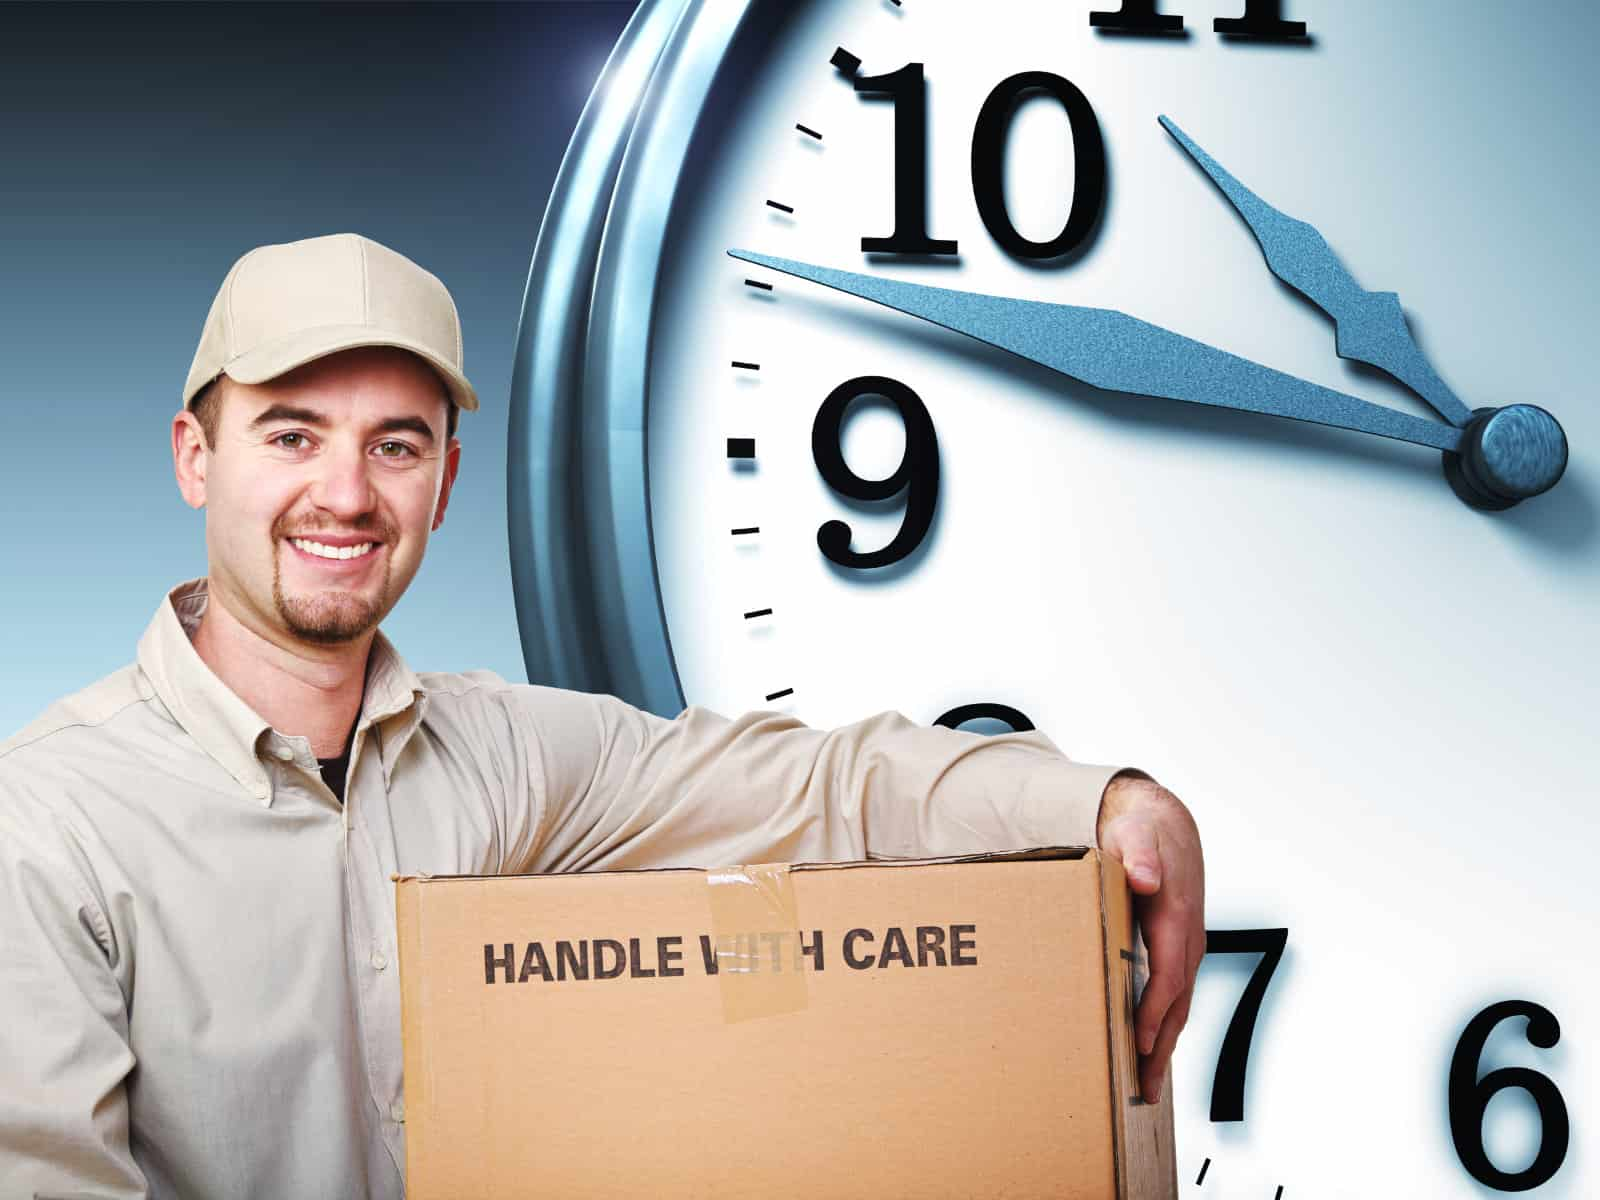 5 Reason Why You Should Use An On-Time Courier for Your Deliveries